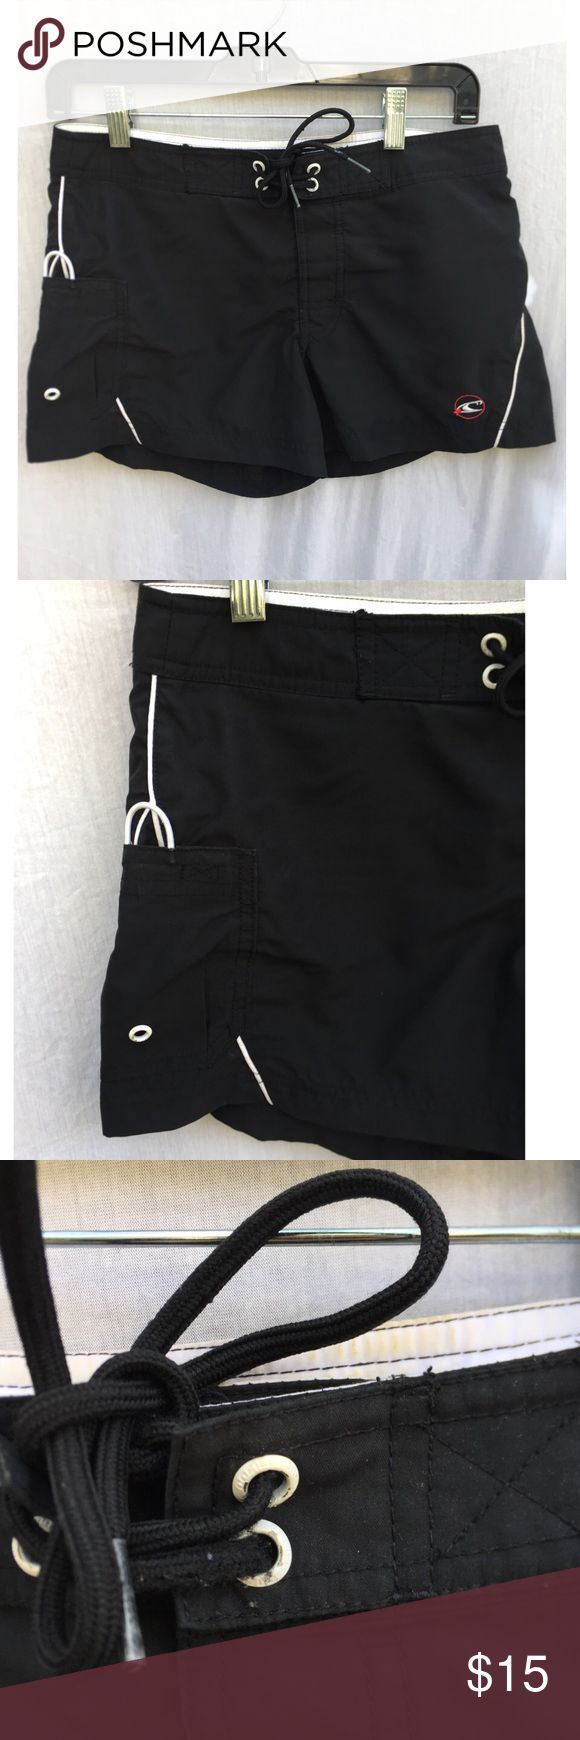 ONEILL BLACK & WHITE WOMEN'S SWIM BOARD SHORTS Size 3 with adjustable waist tie. black and white color. Oneill logo on front side. Has pockets. Good condition lightly worn no significant flaws. FREE SURPRISE GIFT WITH EVERY ORDER! O'Neill Swim